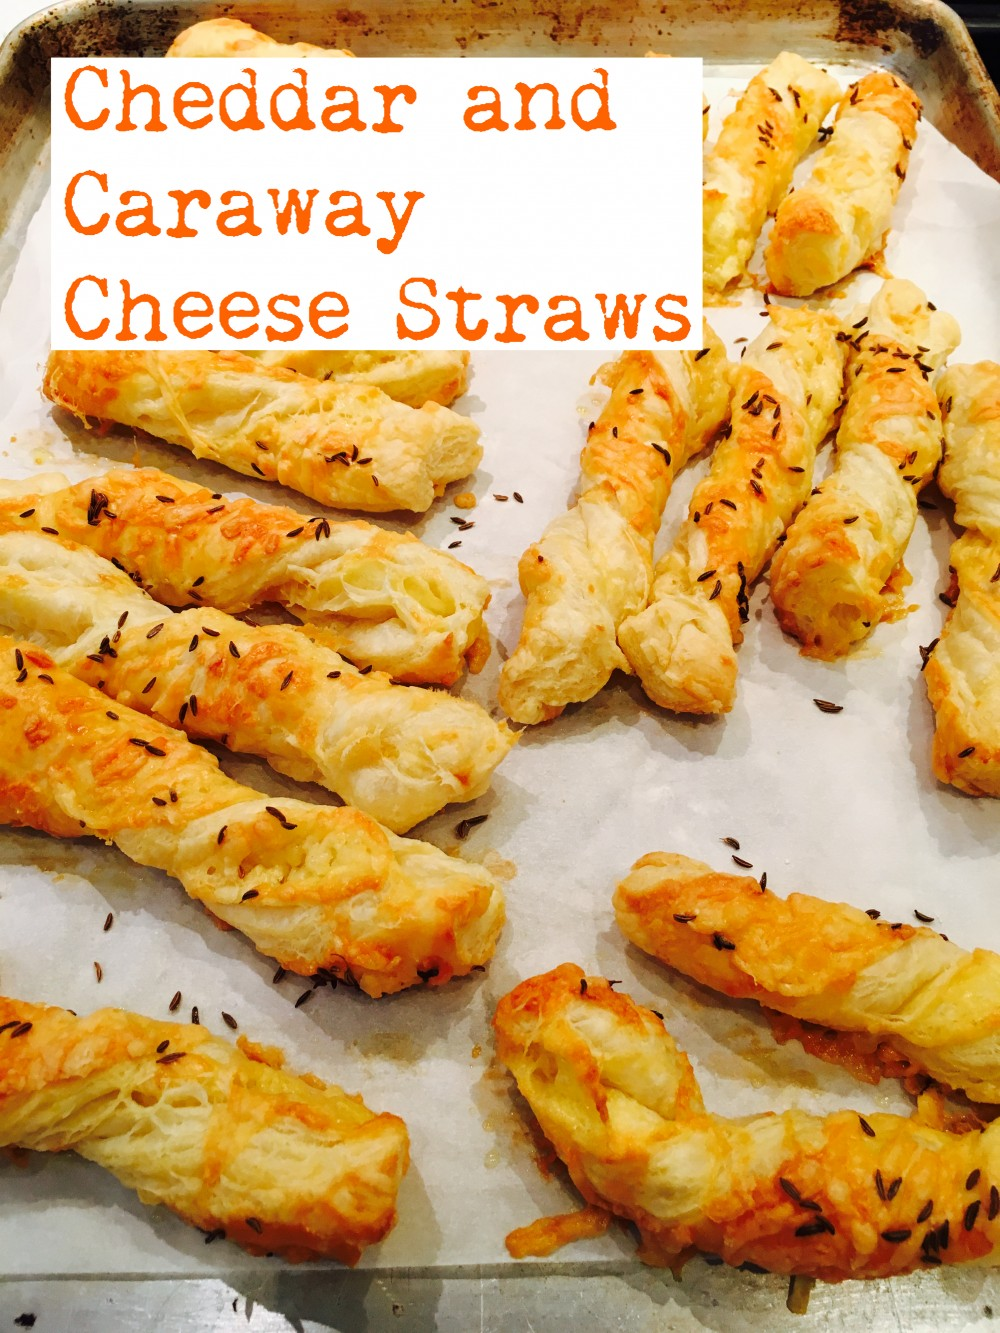 Cheddar and Caraway Cheese Straws by Blythe's Blog ...